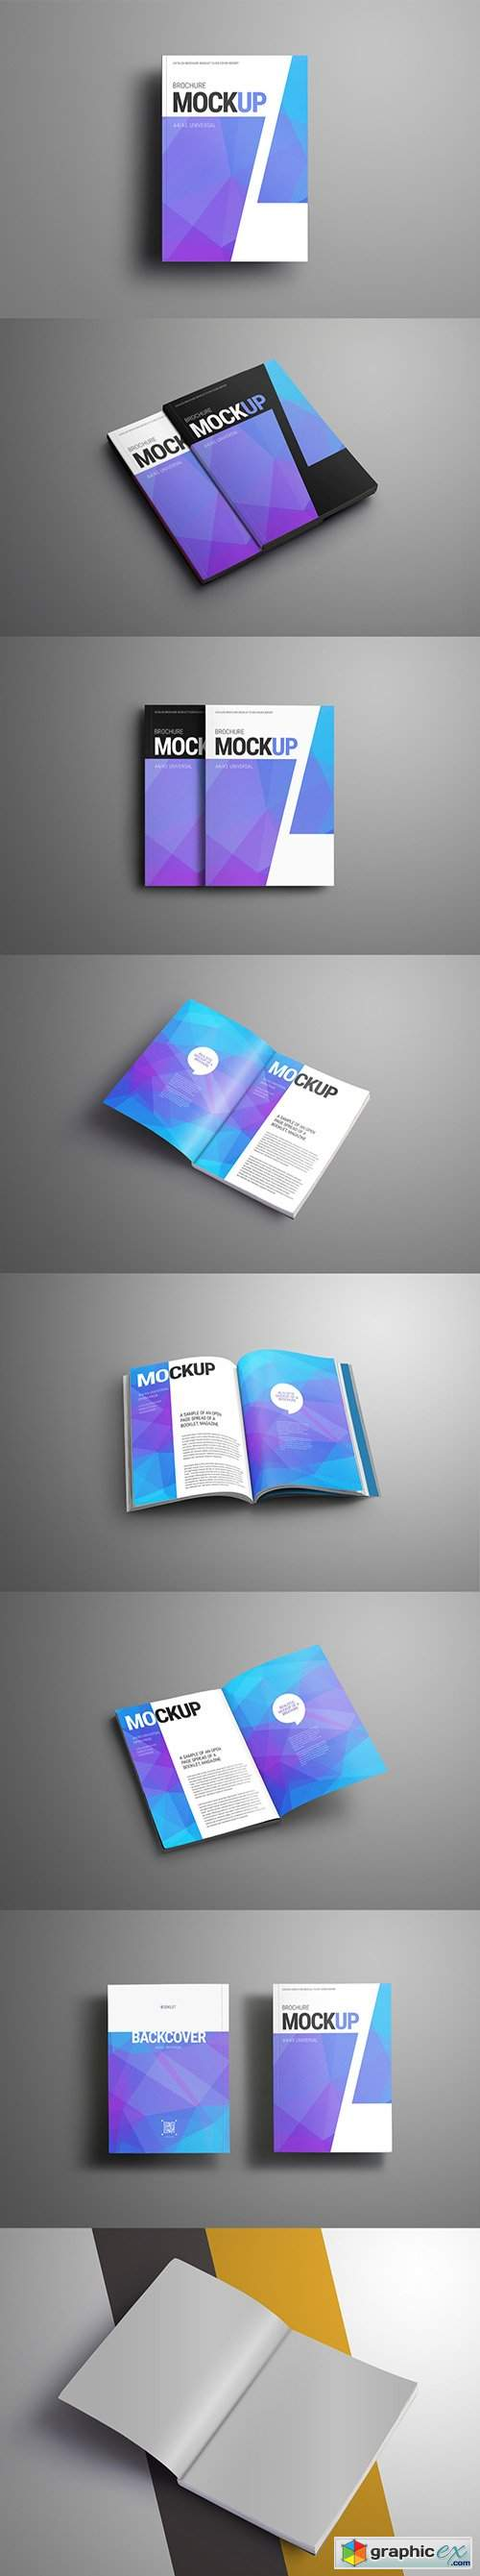 Magazine/Brochure 7 Layout Mockup Set 194658258